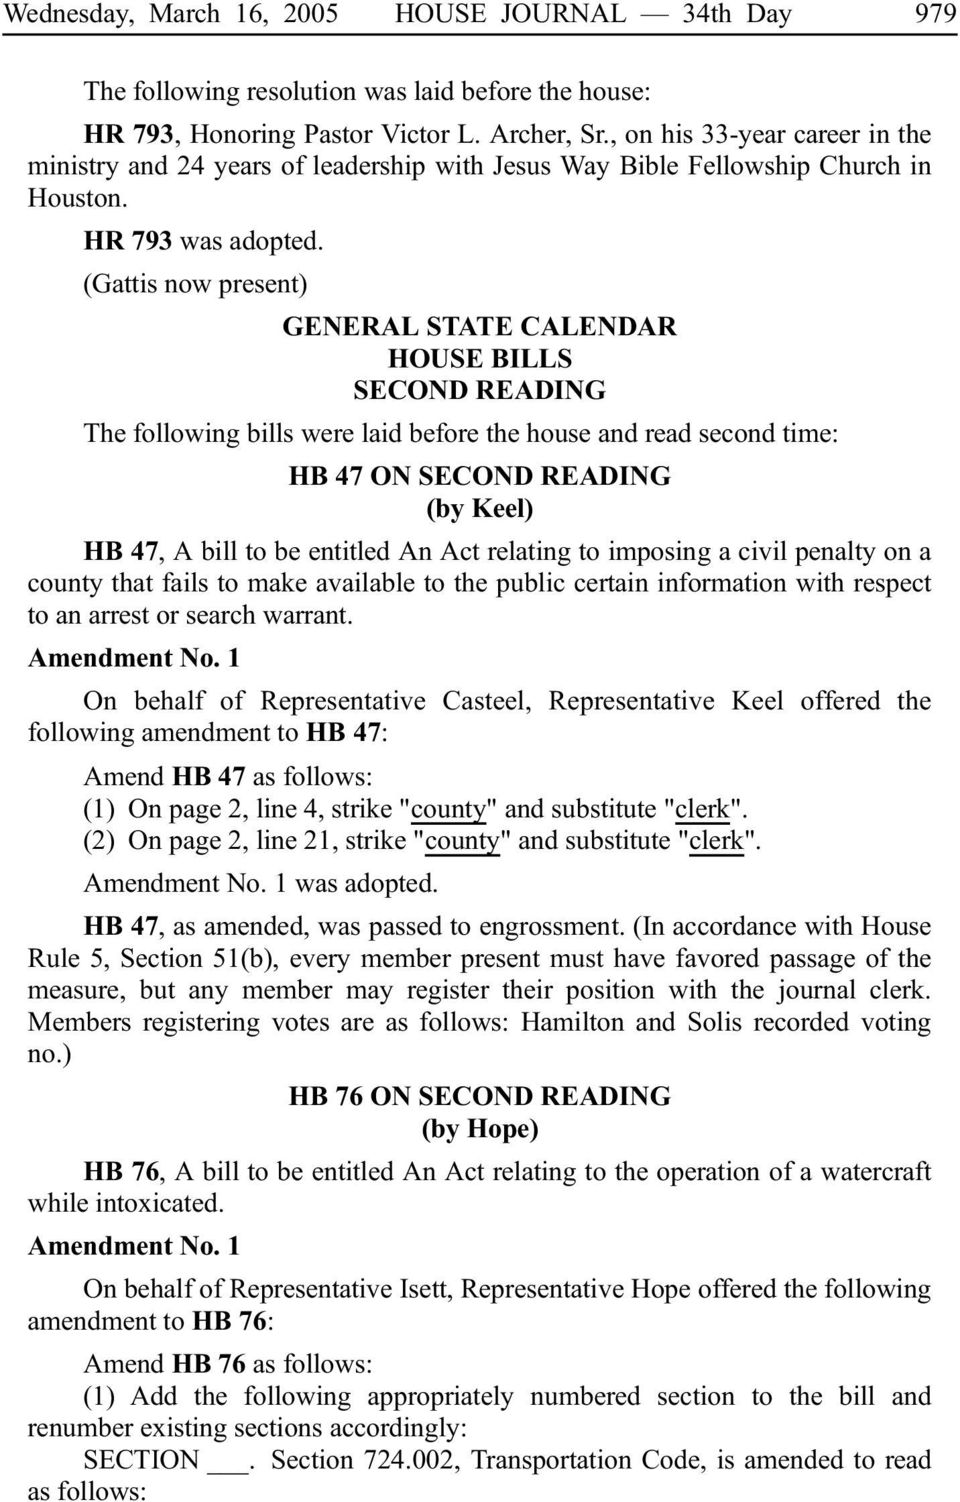 (Gattis now present) GENERAL STATE CALENDAR HOUSE BILLS SECOND READING The following bills were laid before the house and read second time: HB 47 ON SECOND READING (by Keel) HB 47, A bill to be